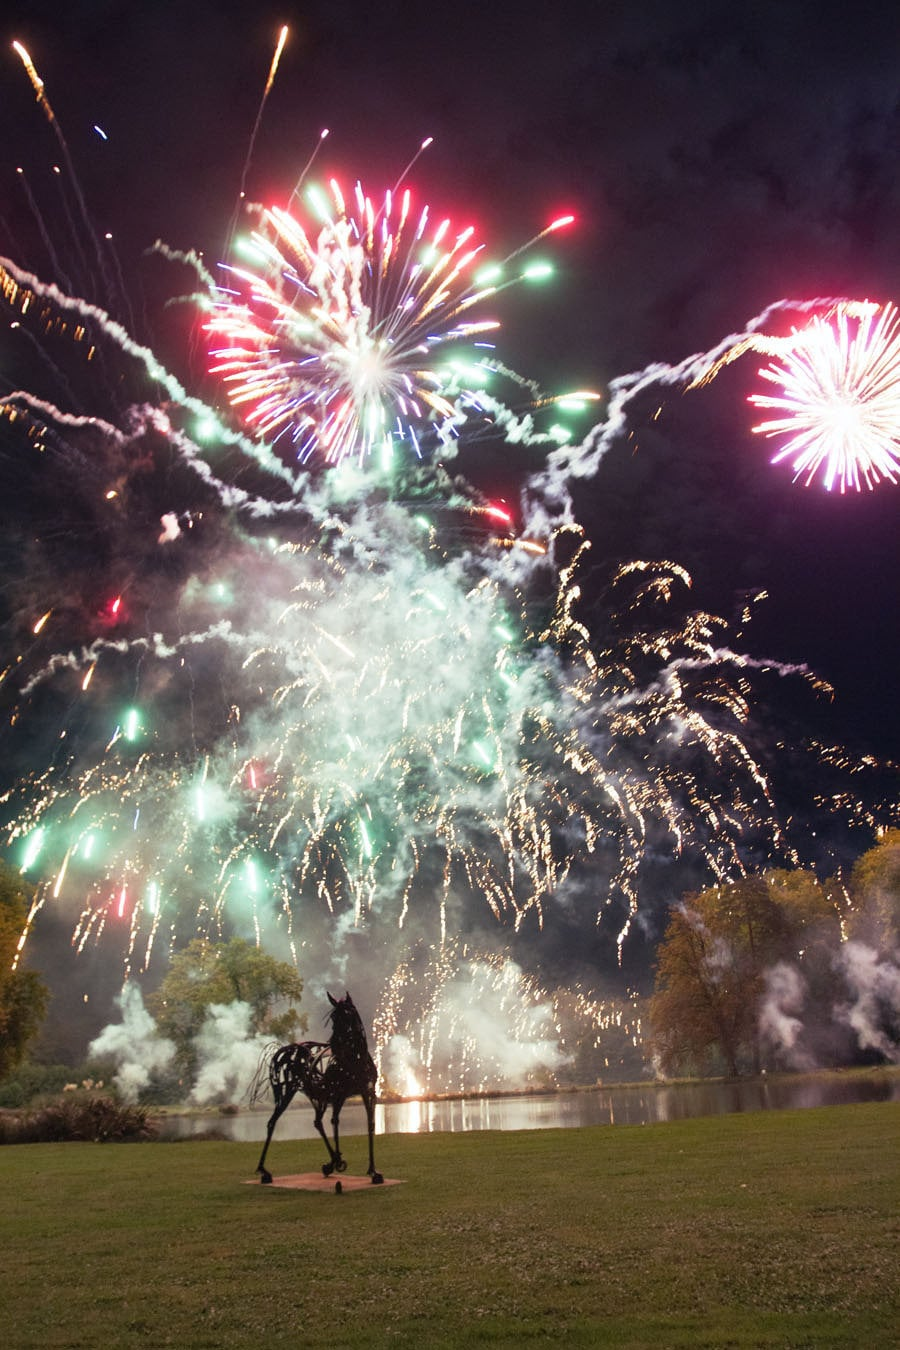 Wow. Just wow, is all I can say about this stunning fireworks display at this French countryside wedding.